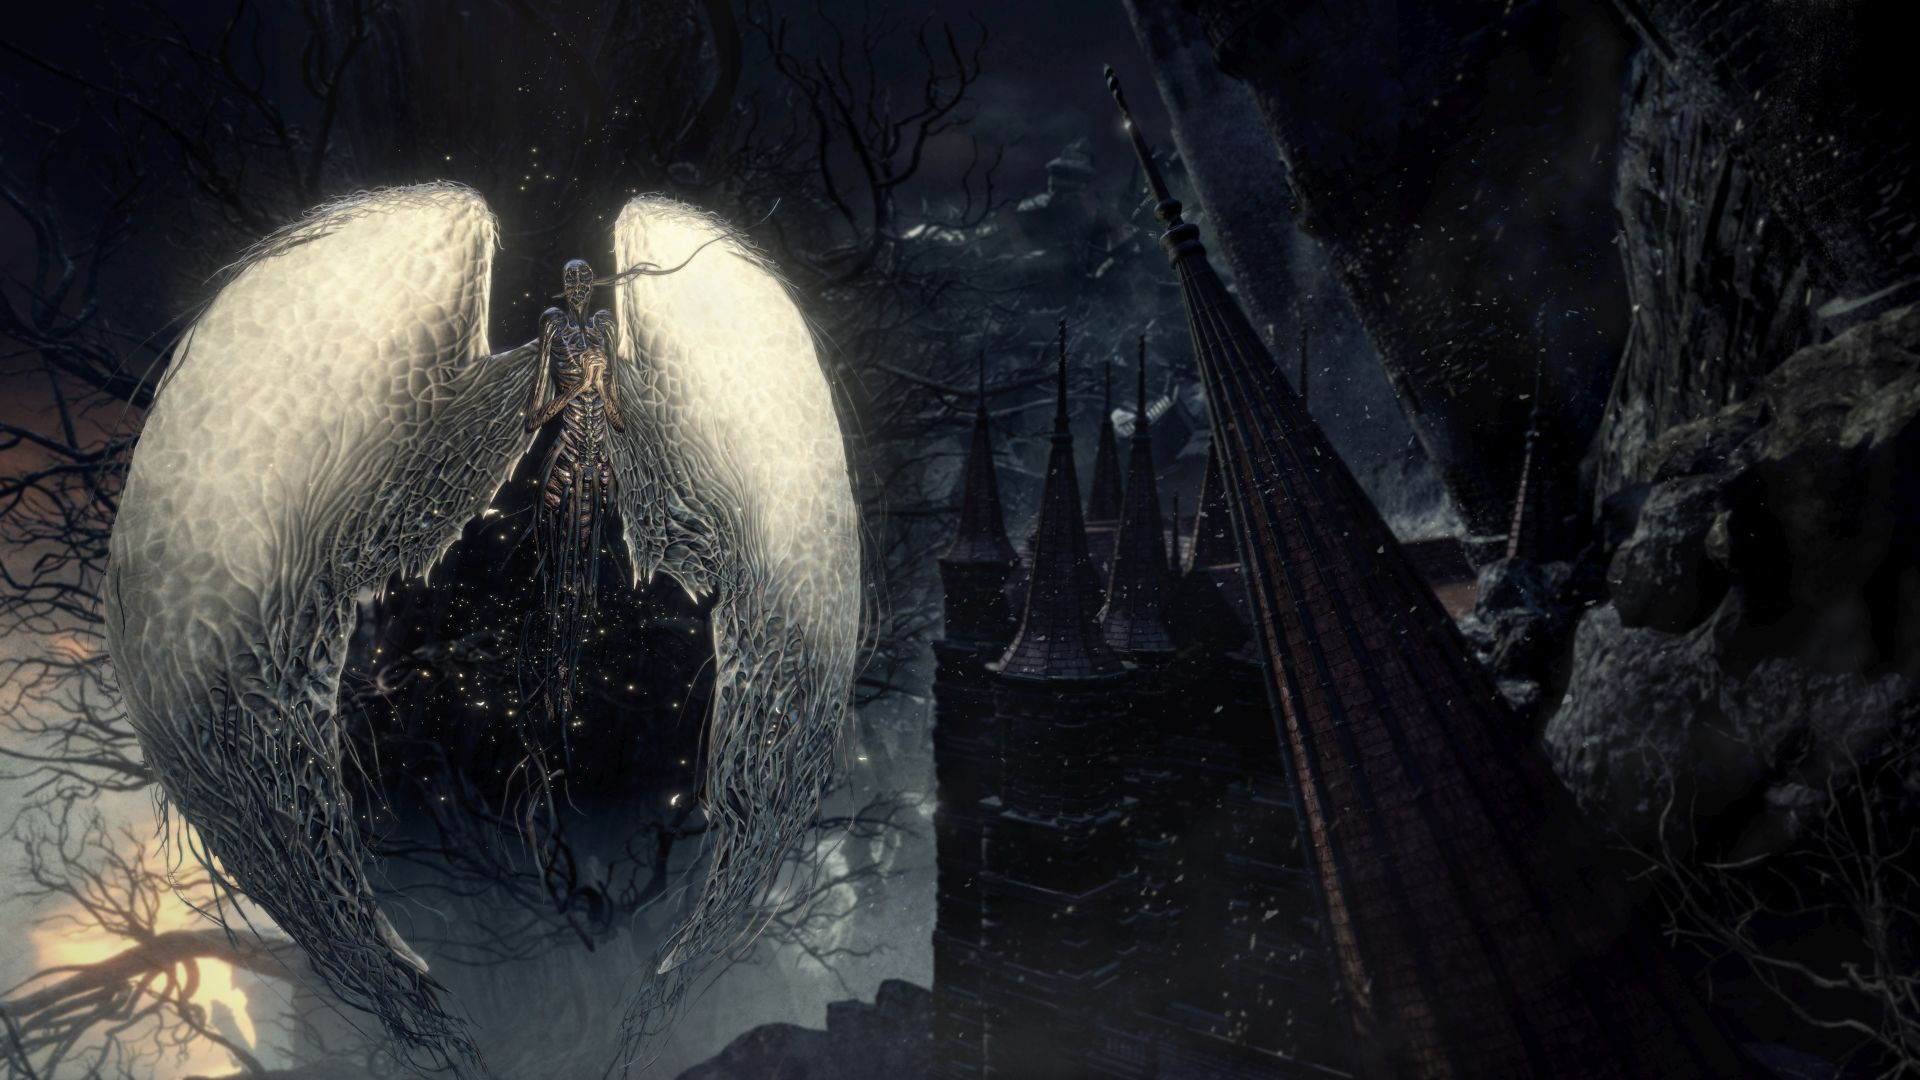 'Dark Souls' Comes To An End With 'The Ringed City' Debut